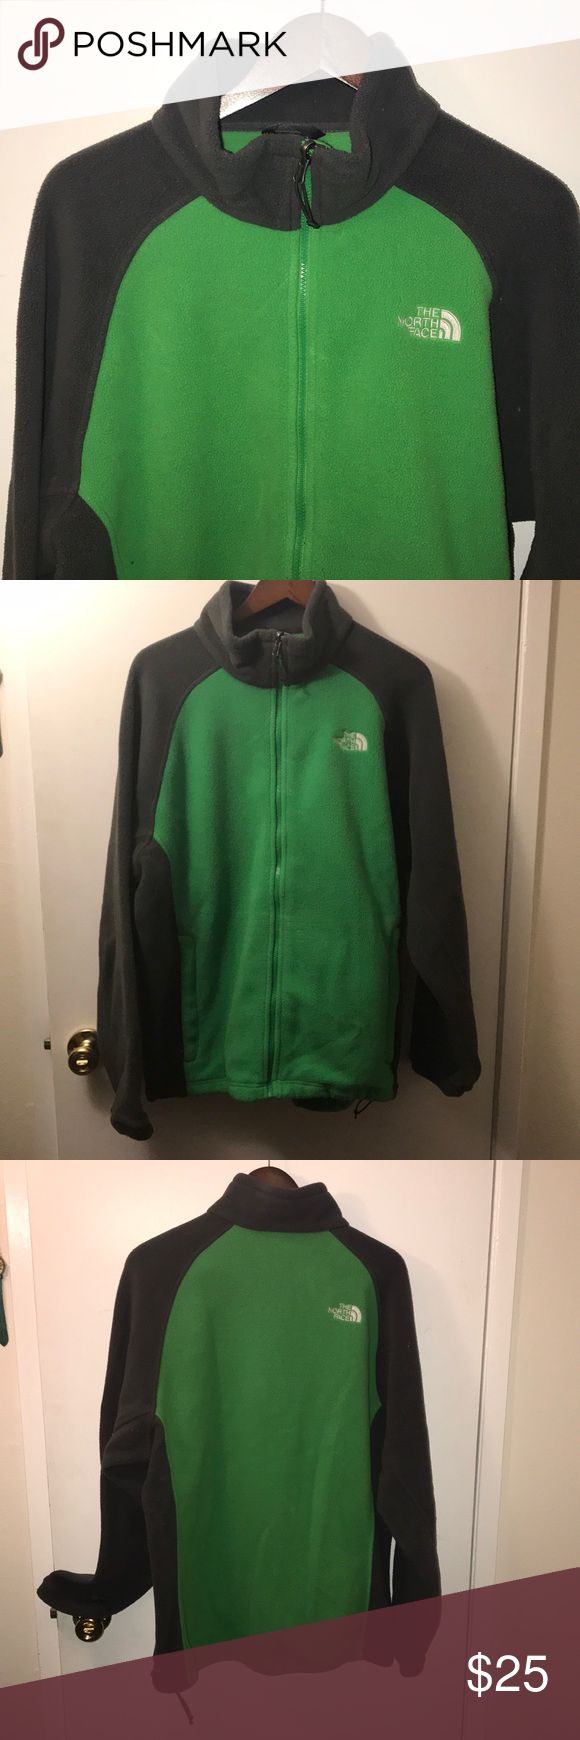 NORTHFACE outlet jacket Worn only around the house. Nice and comfy jacket for the cold months. ❄️ The North Face Jackets & Coats